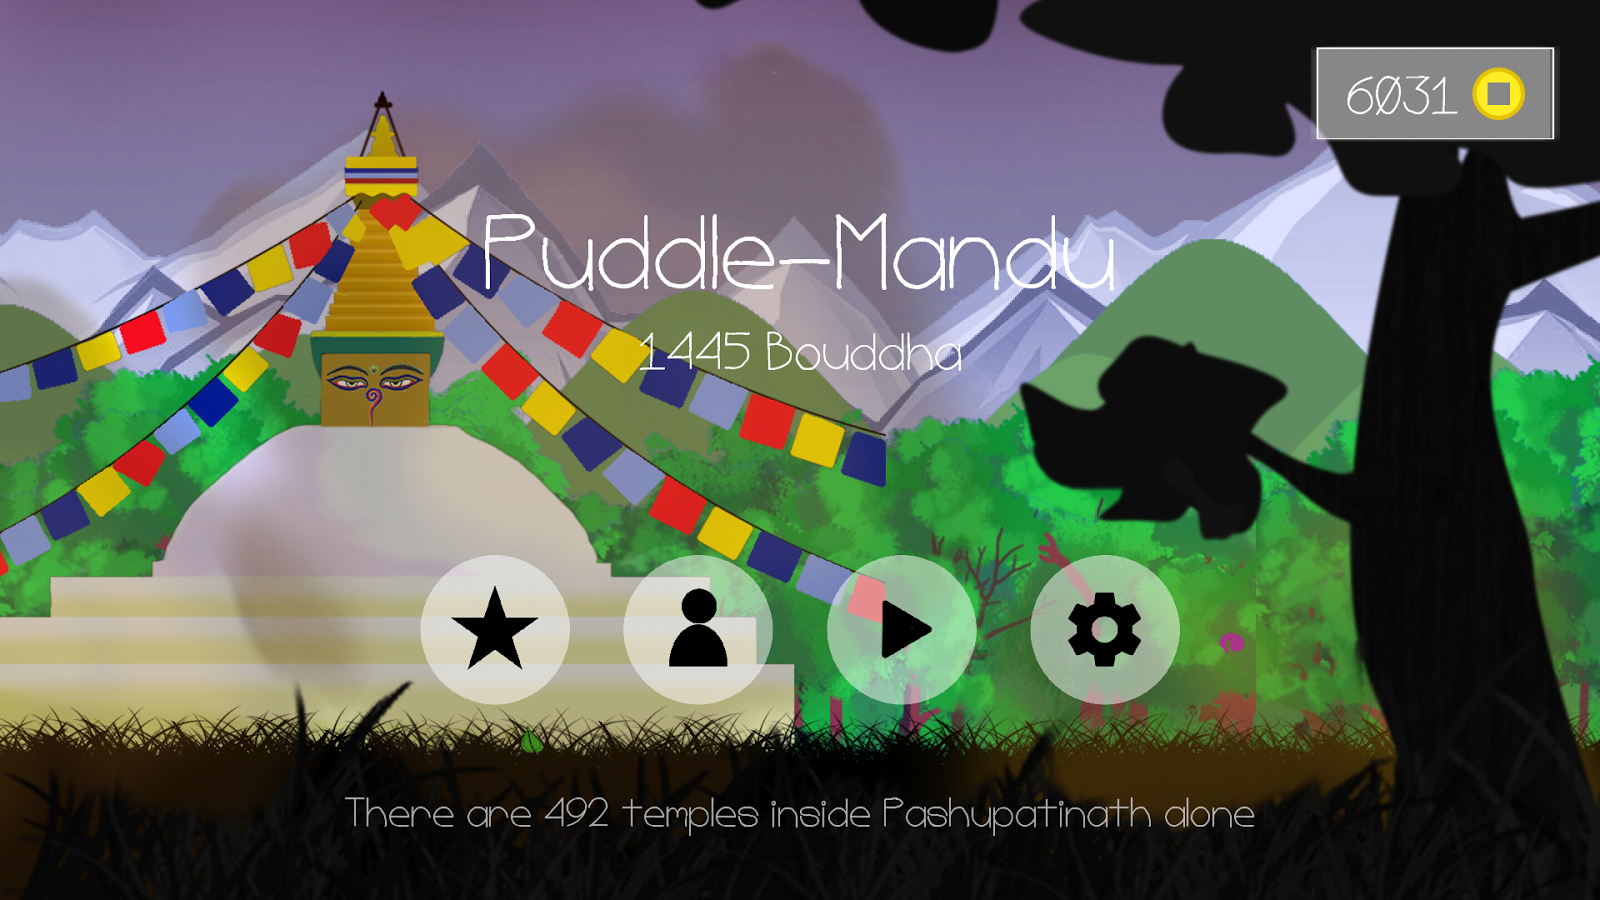 PuddleMandu 3 3 APK Download - Android Action Games